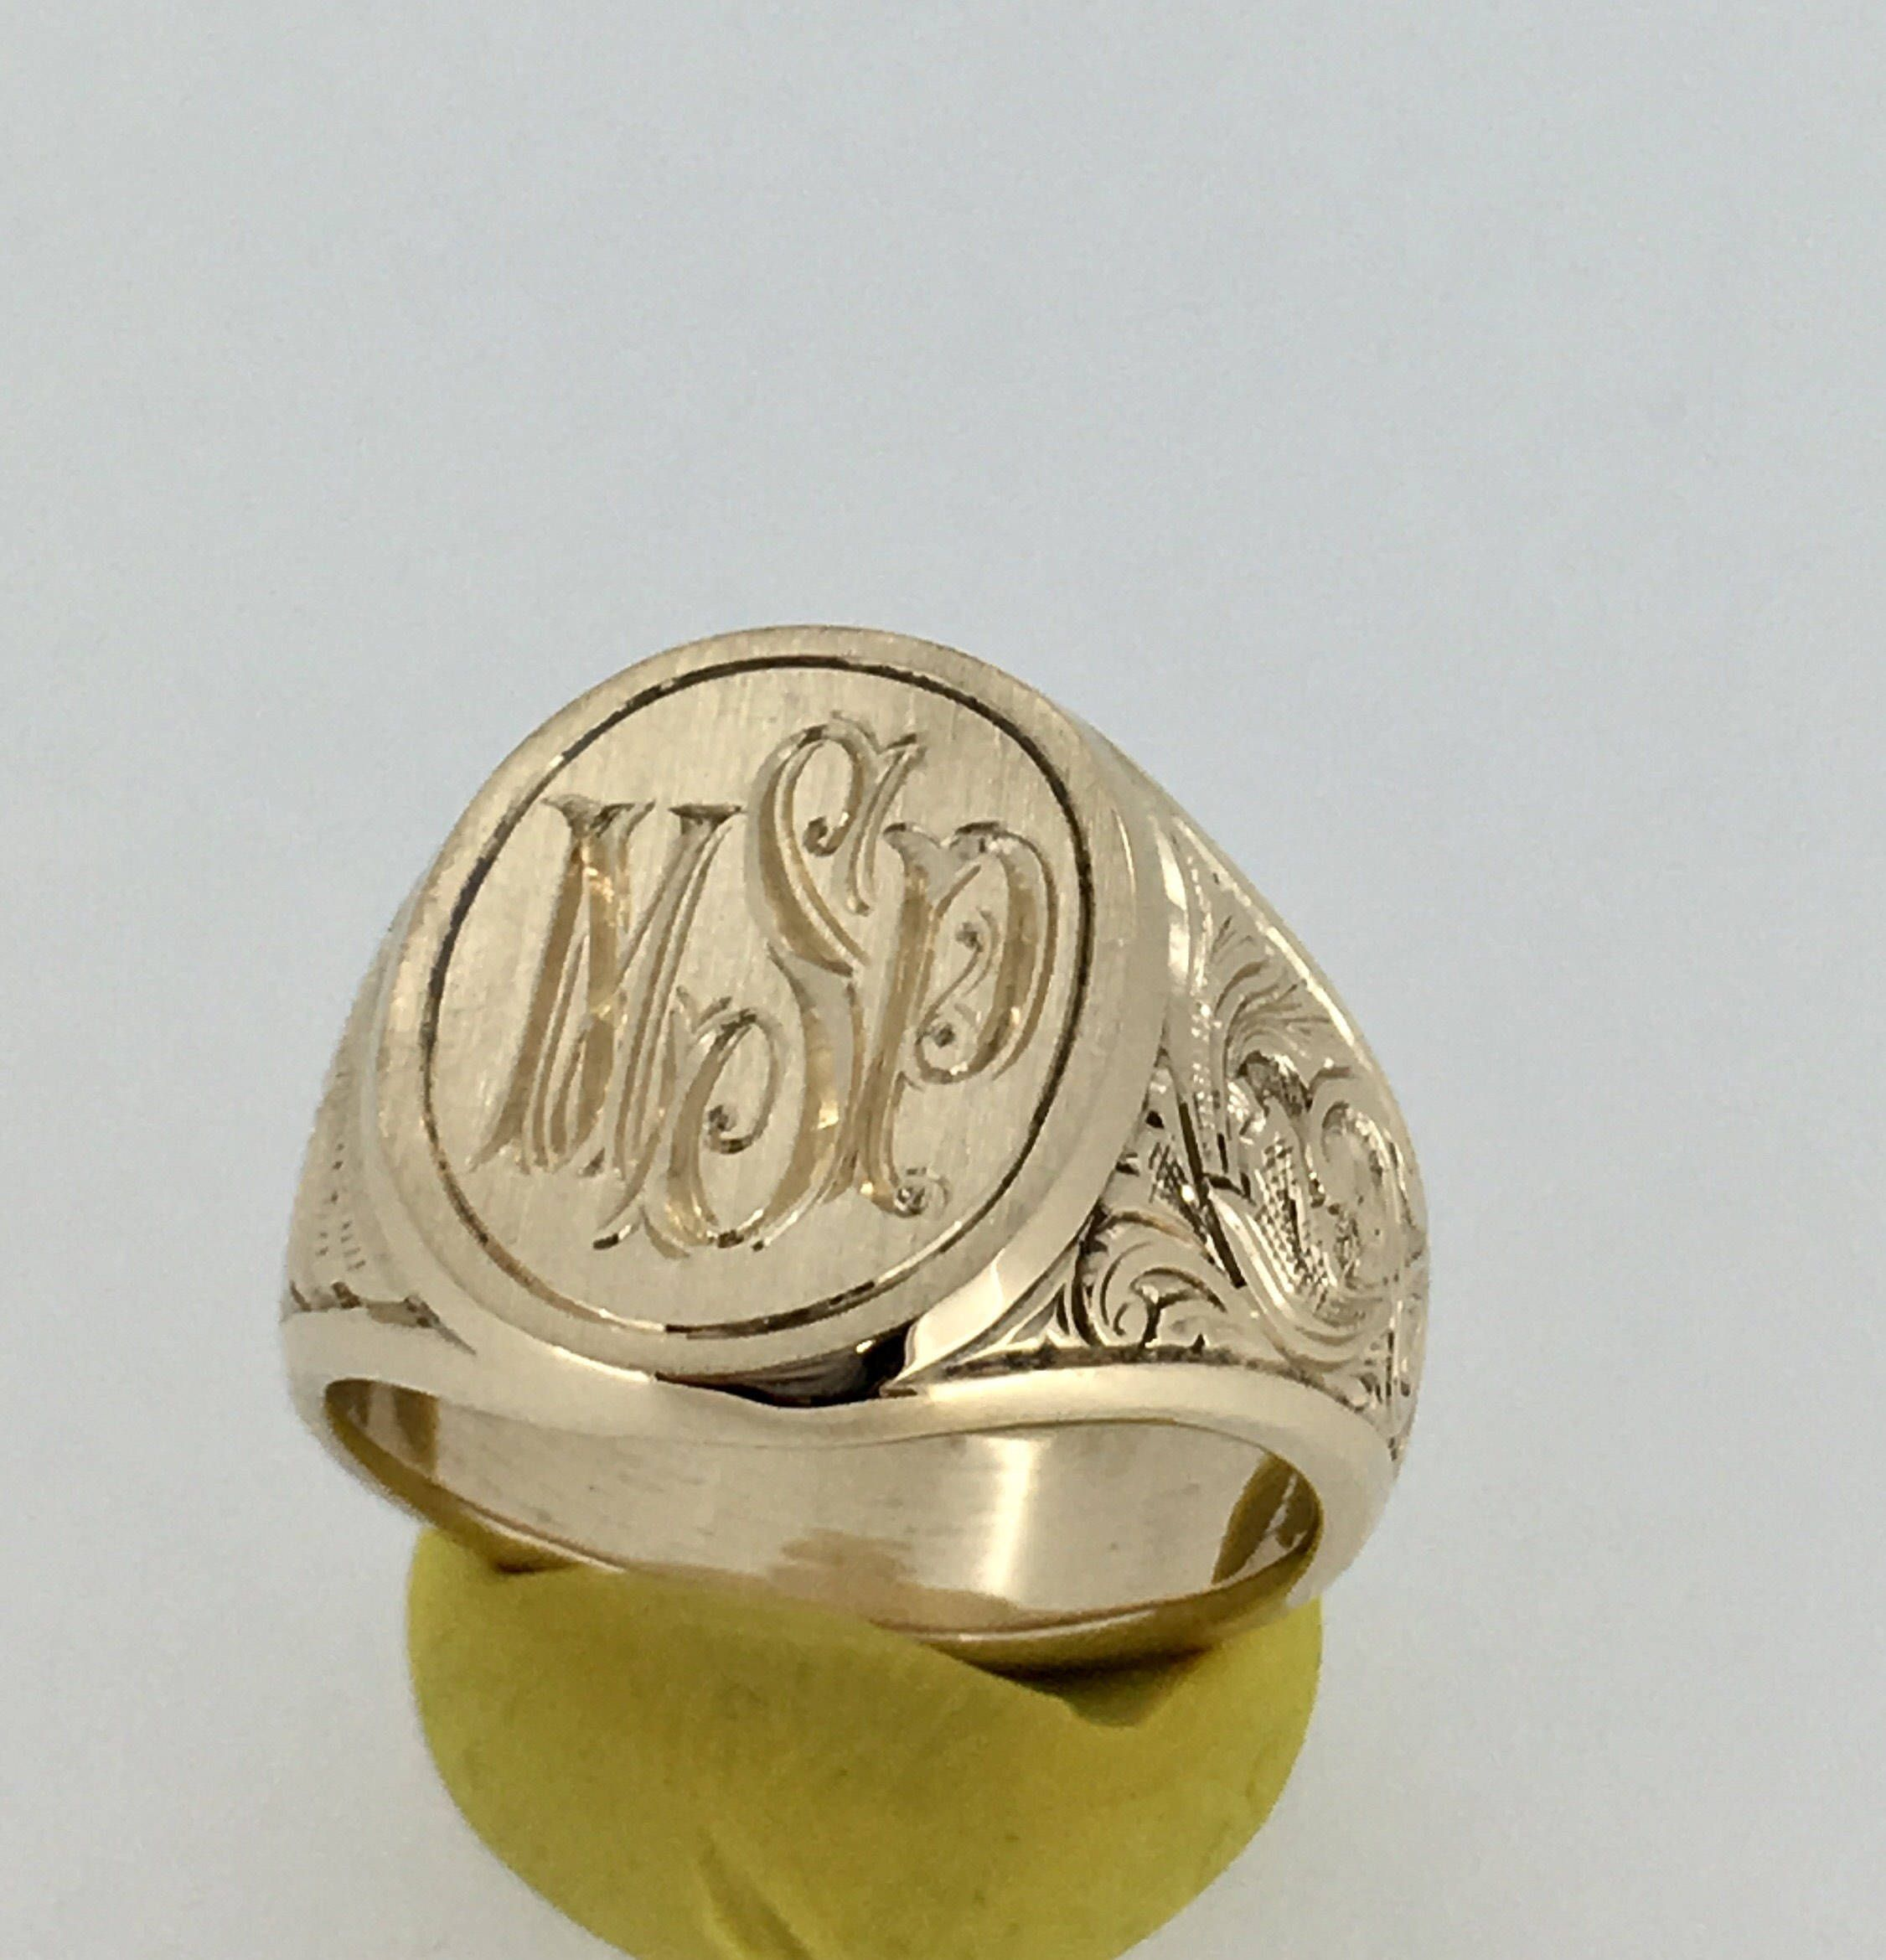 ouam shield to thumbnails itm enamel crest fraternal click ring antique enlarge member gold rings jr